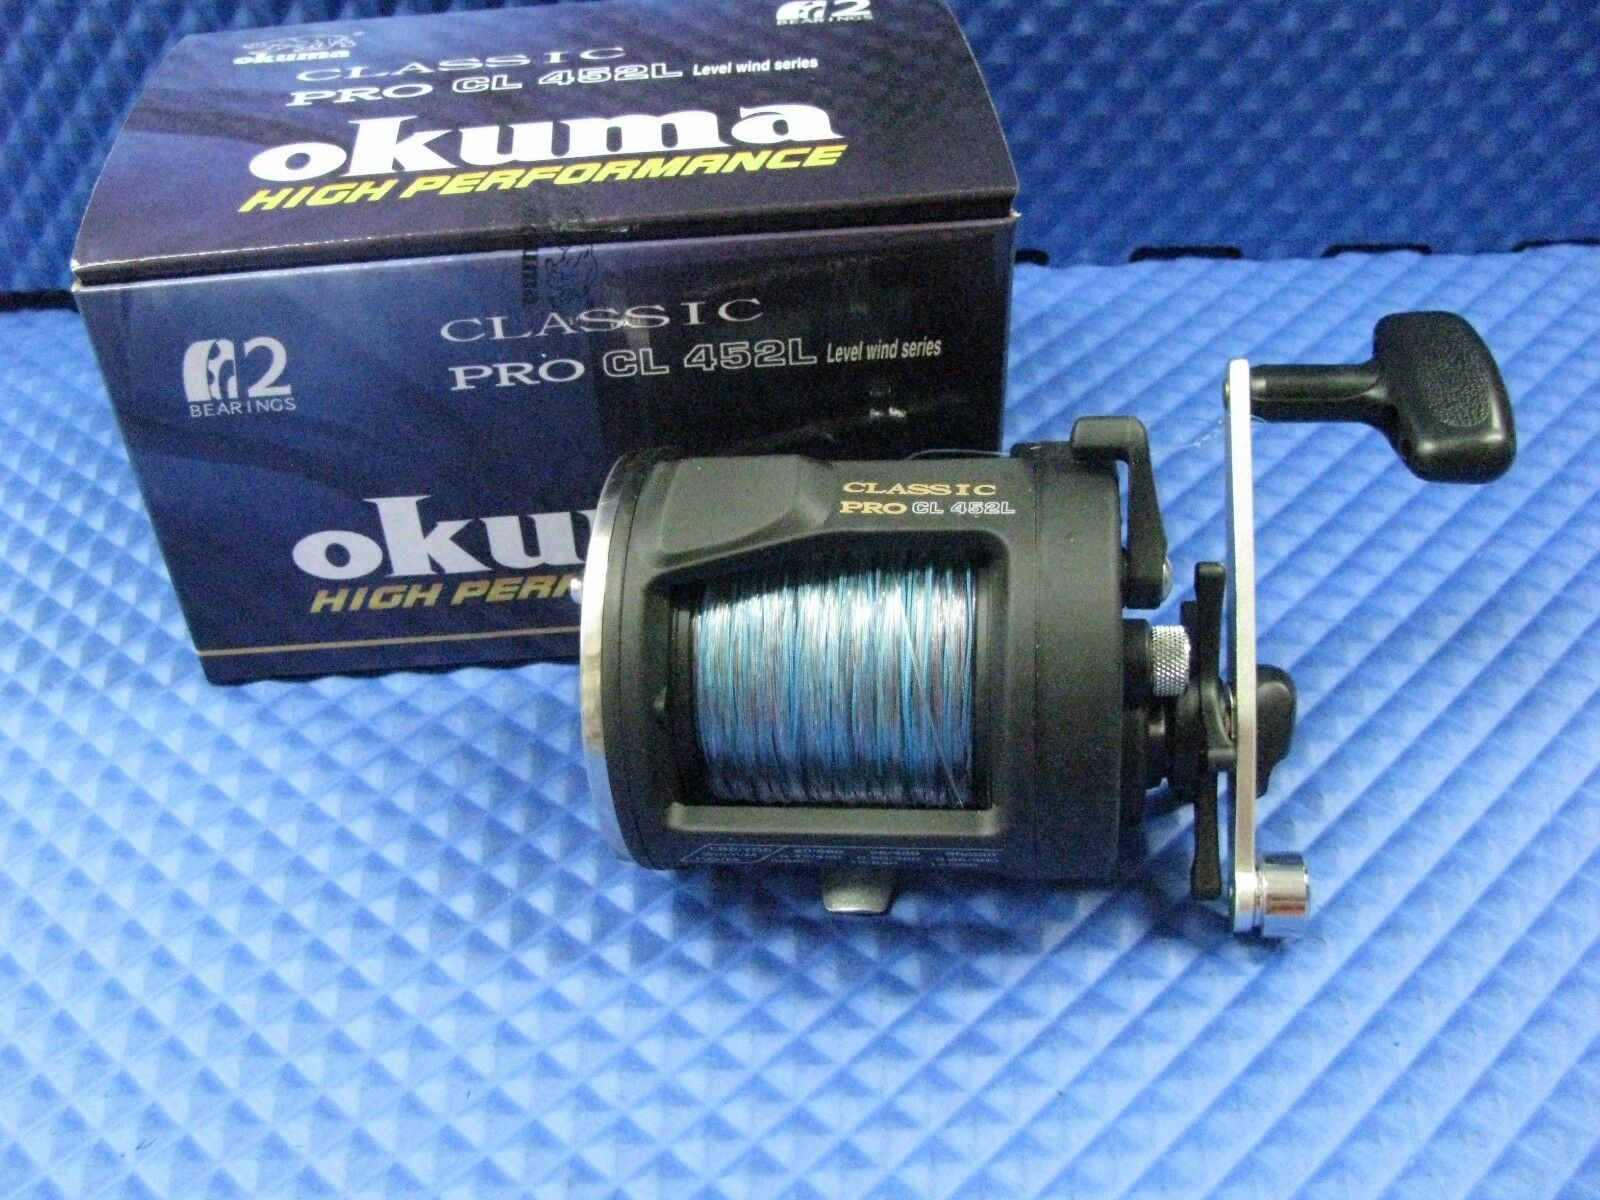 Okuma Classic Pro CL 452L Trolling Reel Pre Spooled with 10 Coloree 27  Lead Core